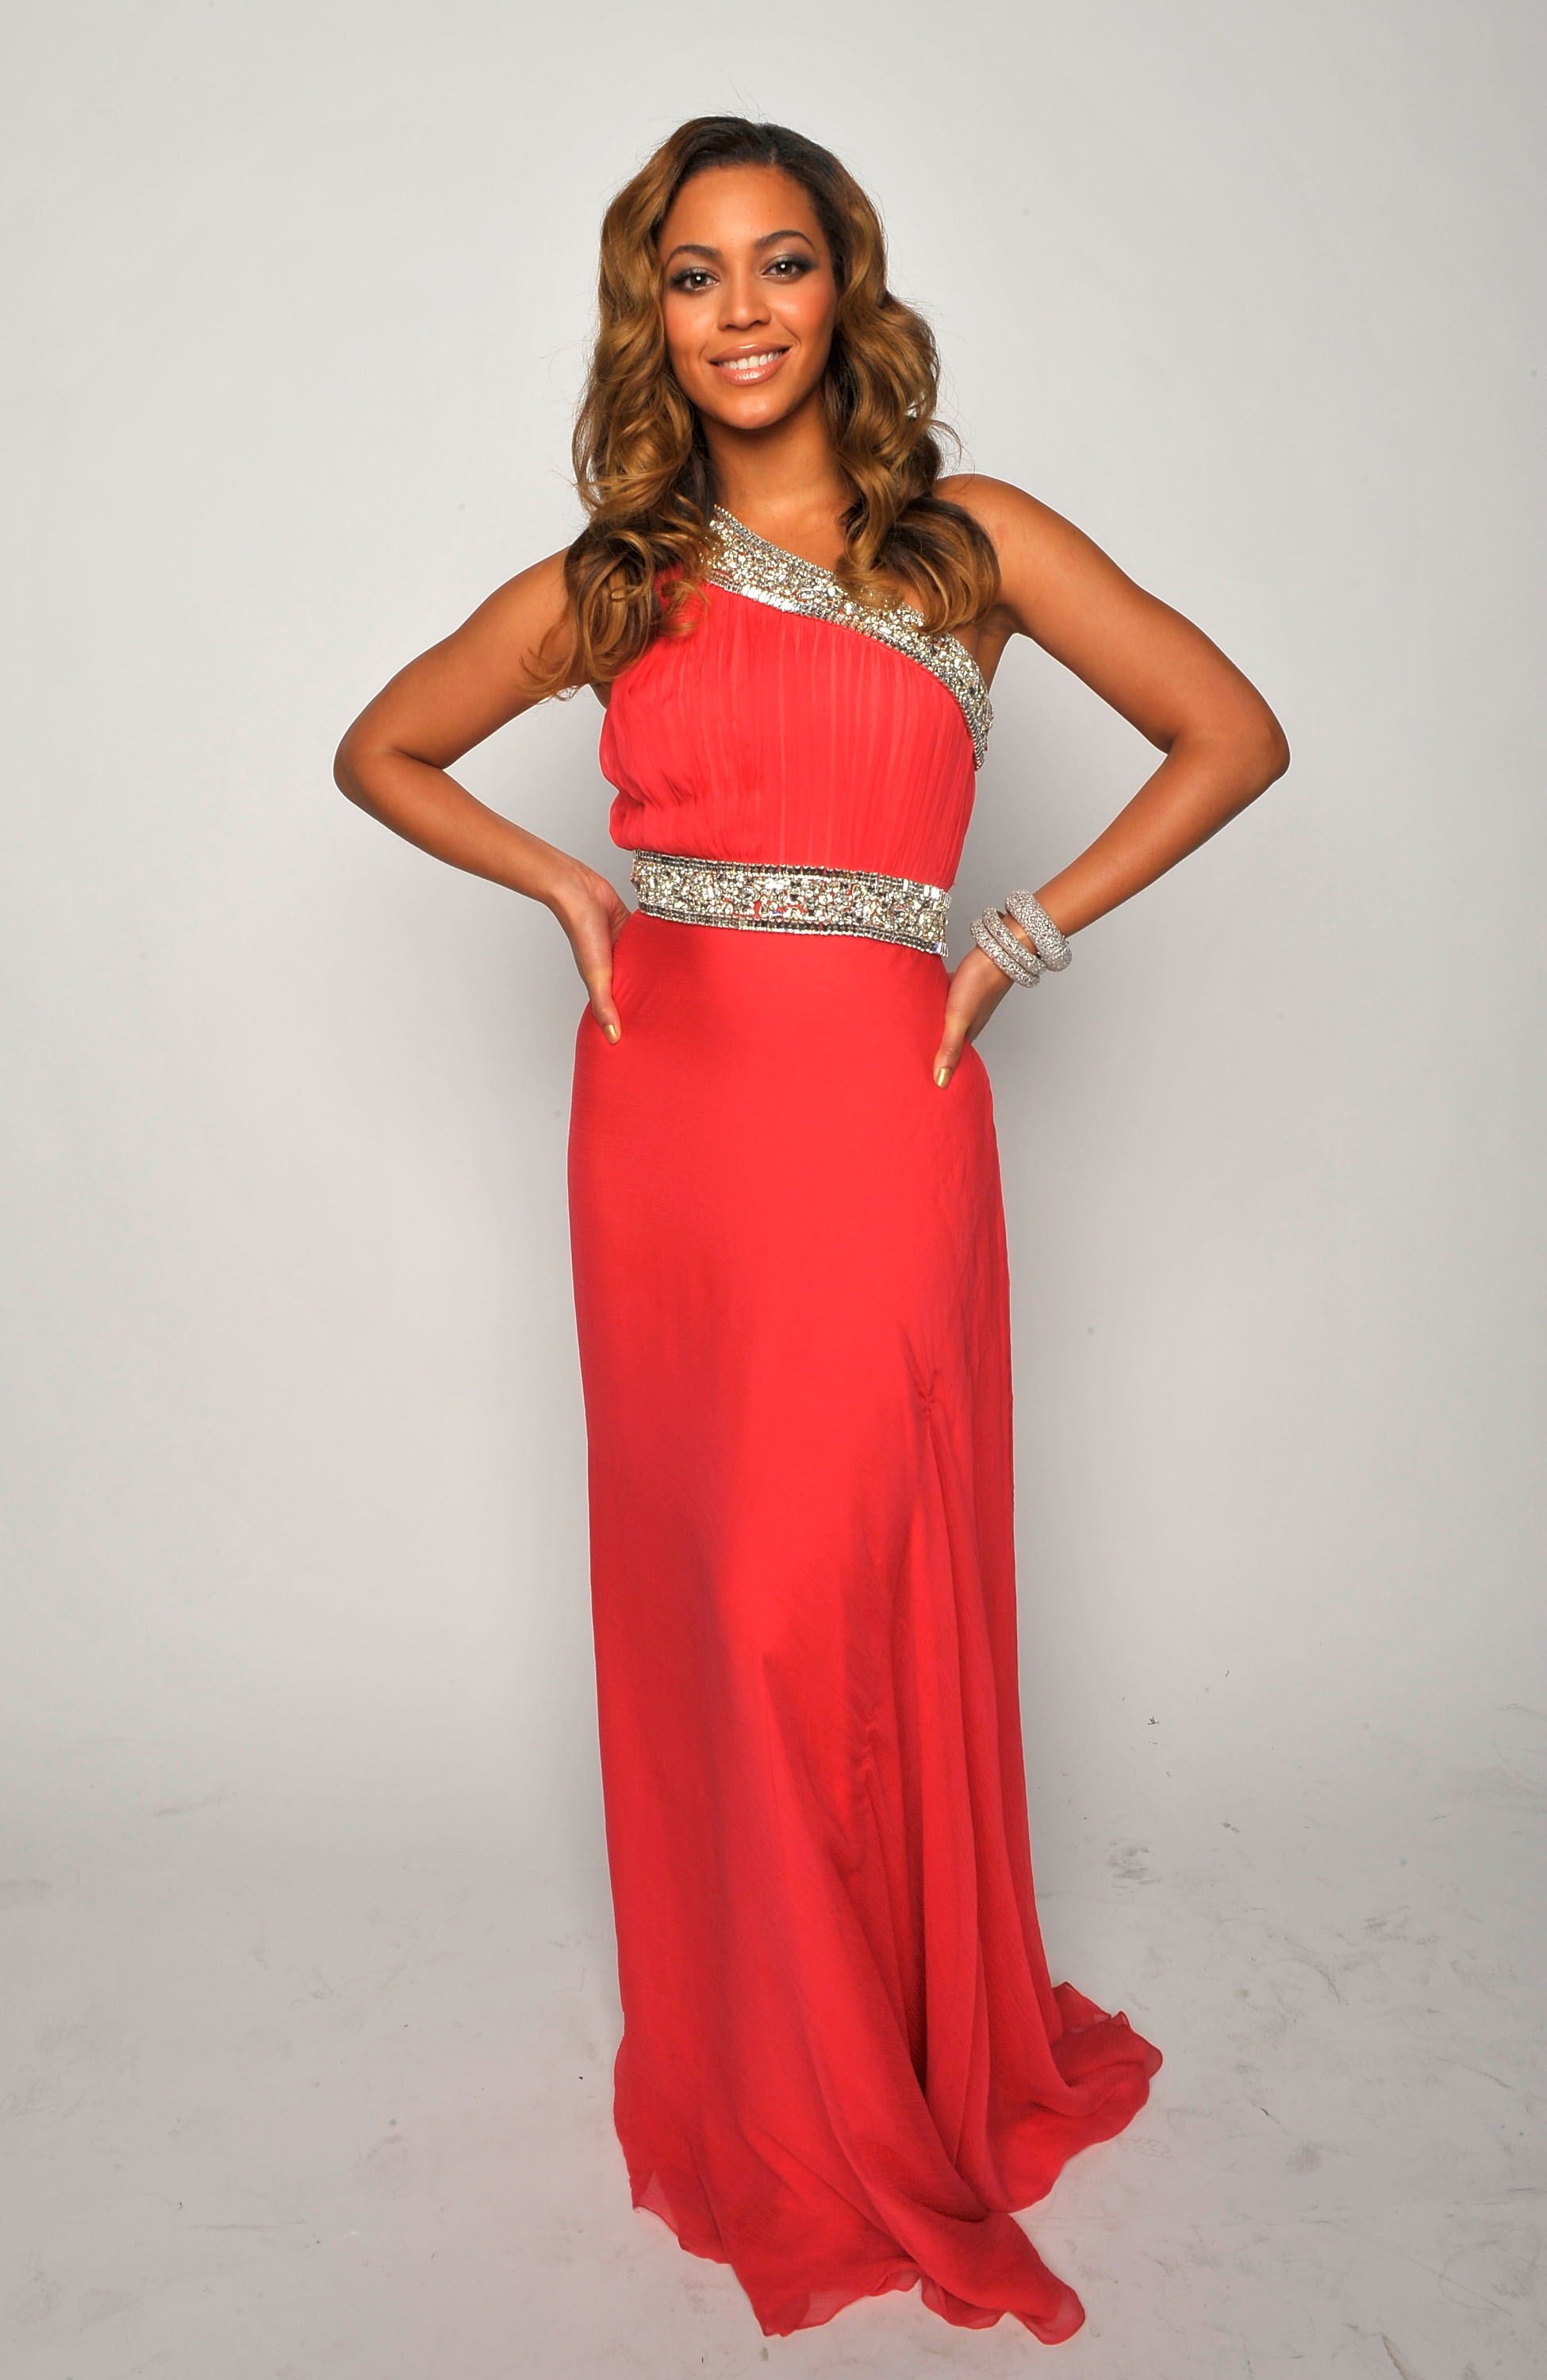 LOS ANGELES, CA - FEBRUARY 12: Singer Beyonce Knowles poses for a portrait during the 40th NAACP Image Awards held at the Shrine Auditorium on February 12, 2009 in Los Angeles, California. (Photo by Charley Gallay/Getty Images for NAACP)